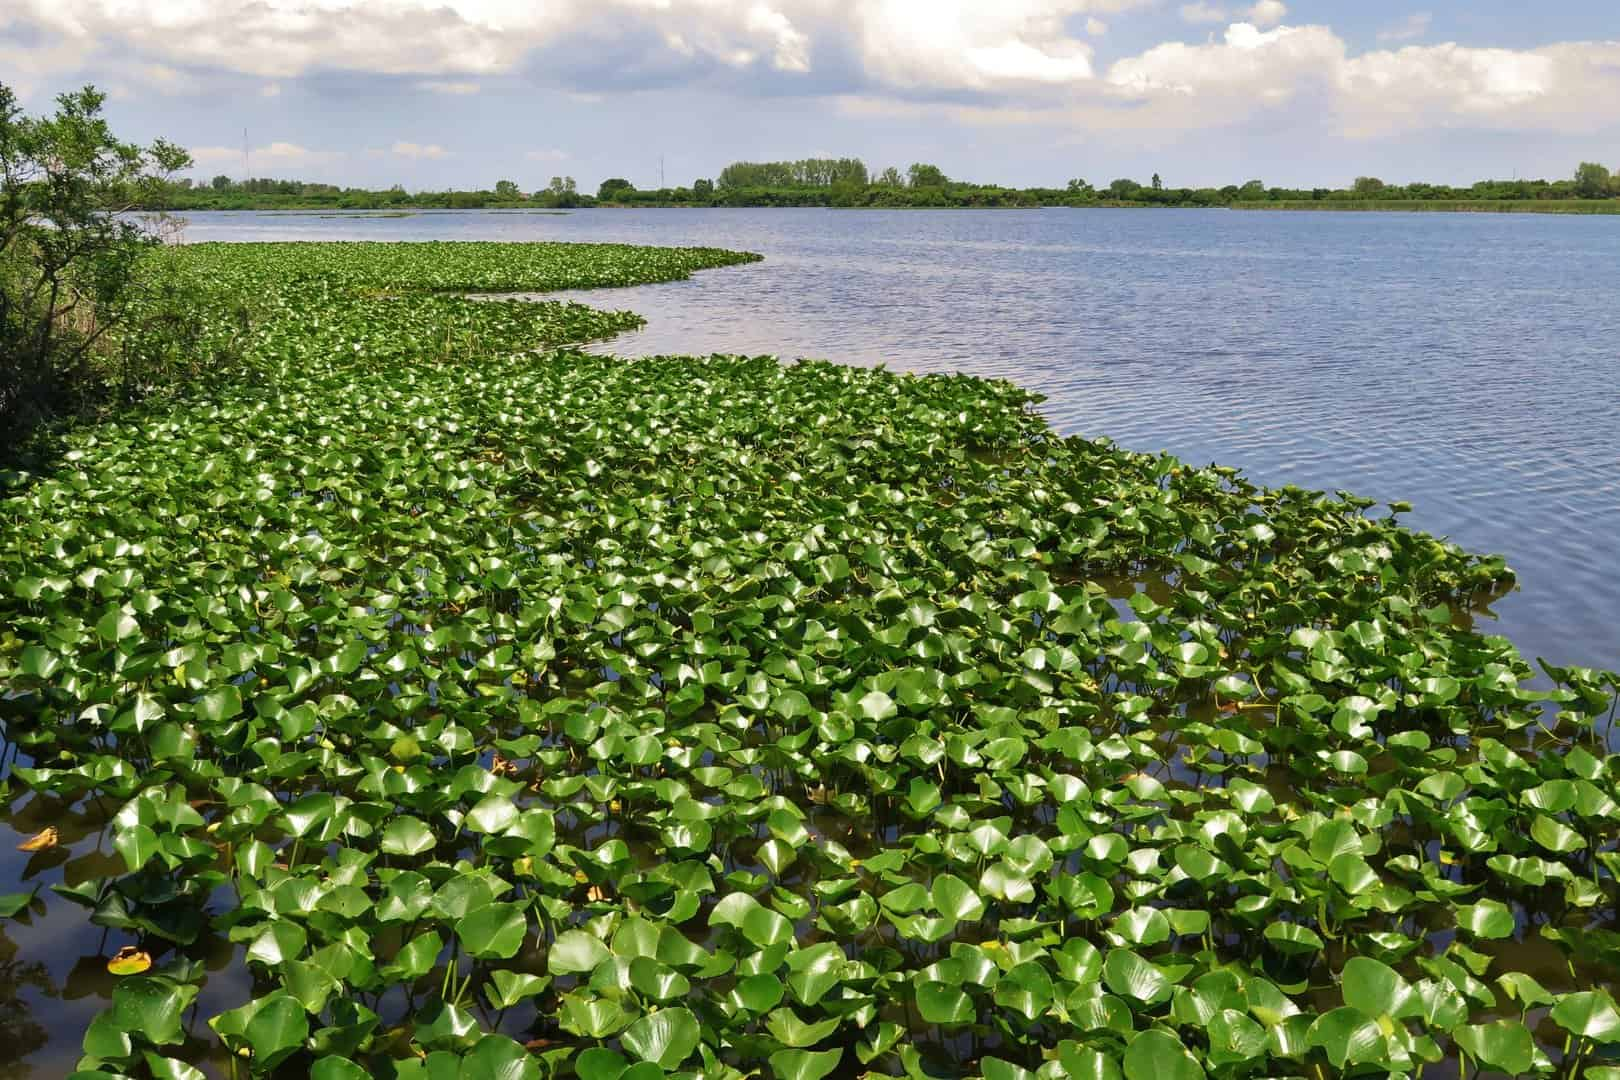 Water plants on the Lake Erie in Wheatley Provincial Park